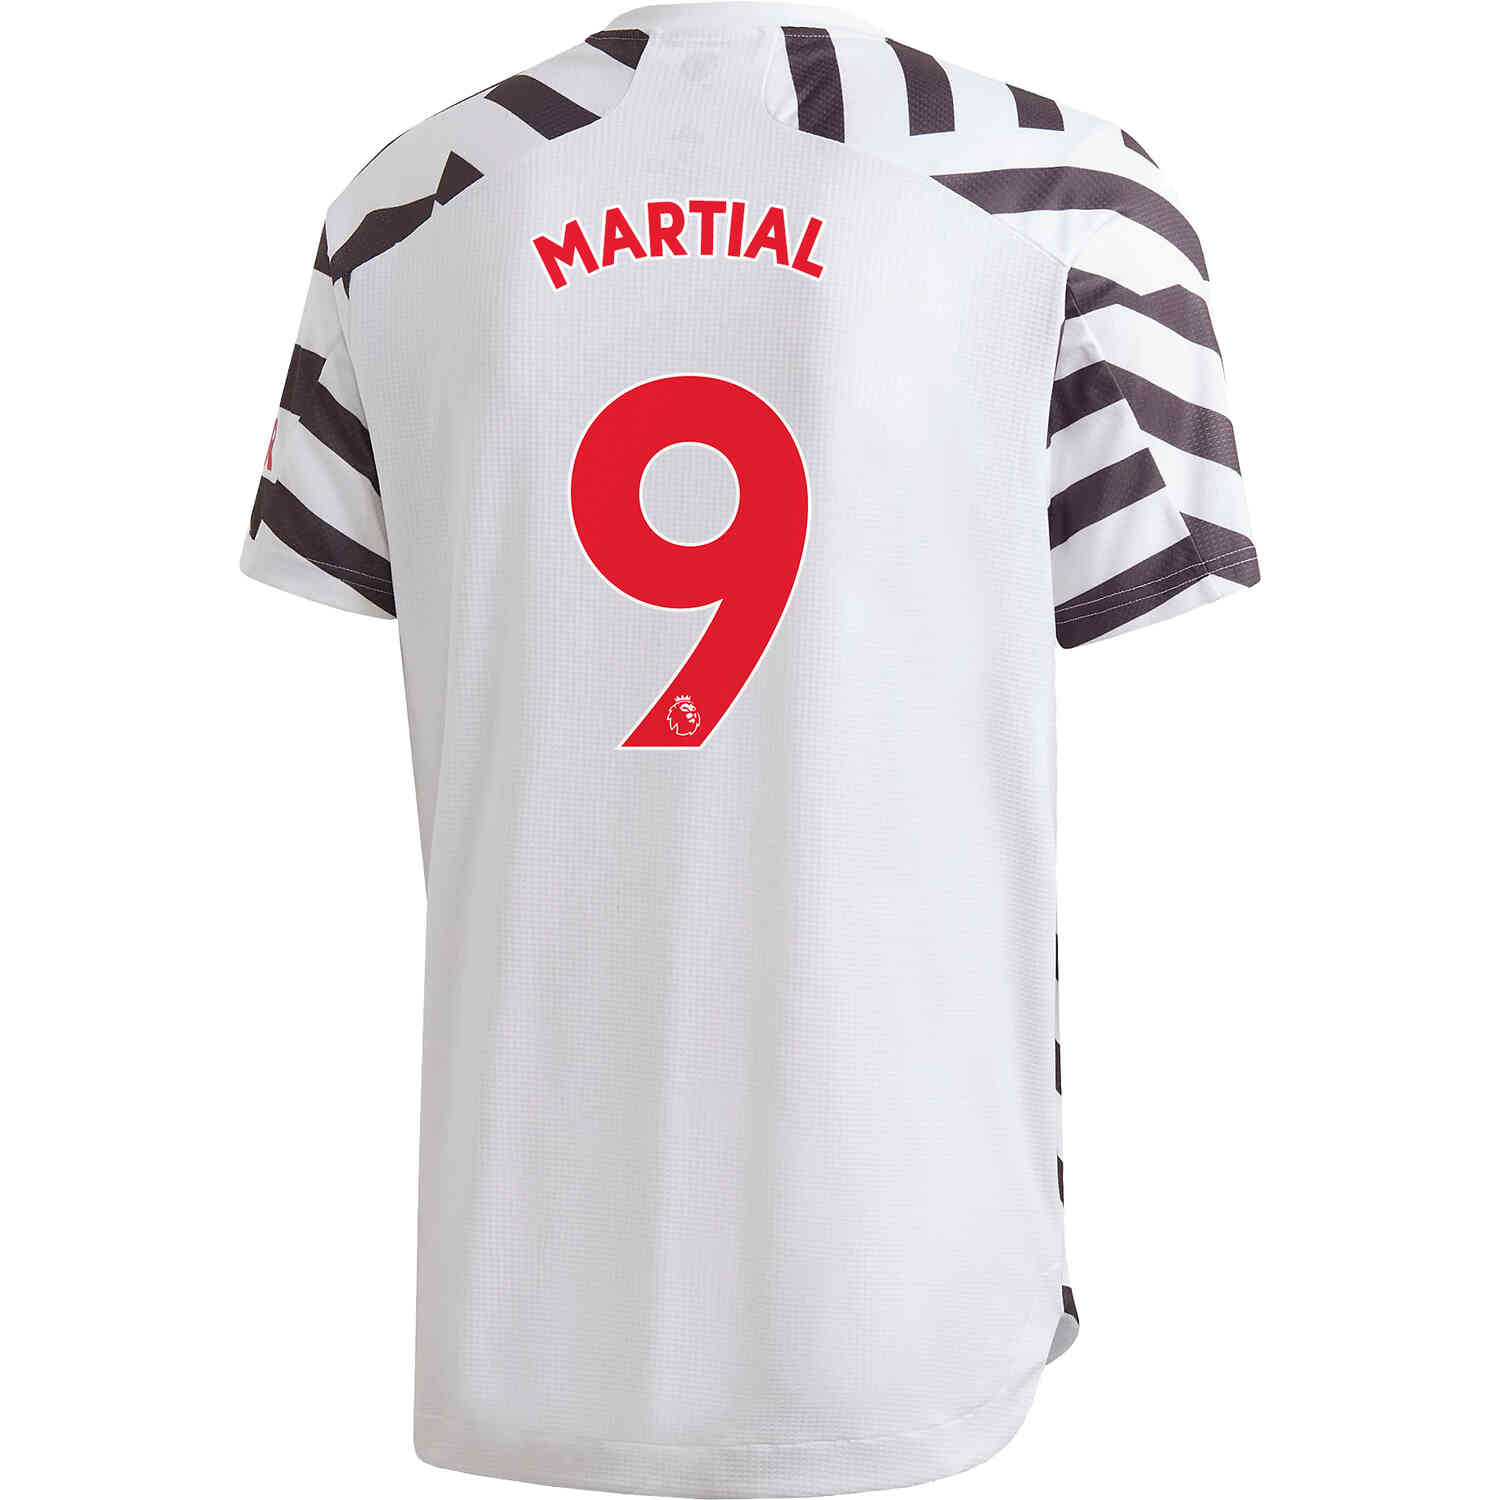 2020/21 adidas Anthony Martial Manchester United 3rd Authentic Jersey - SoccerPro